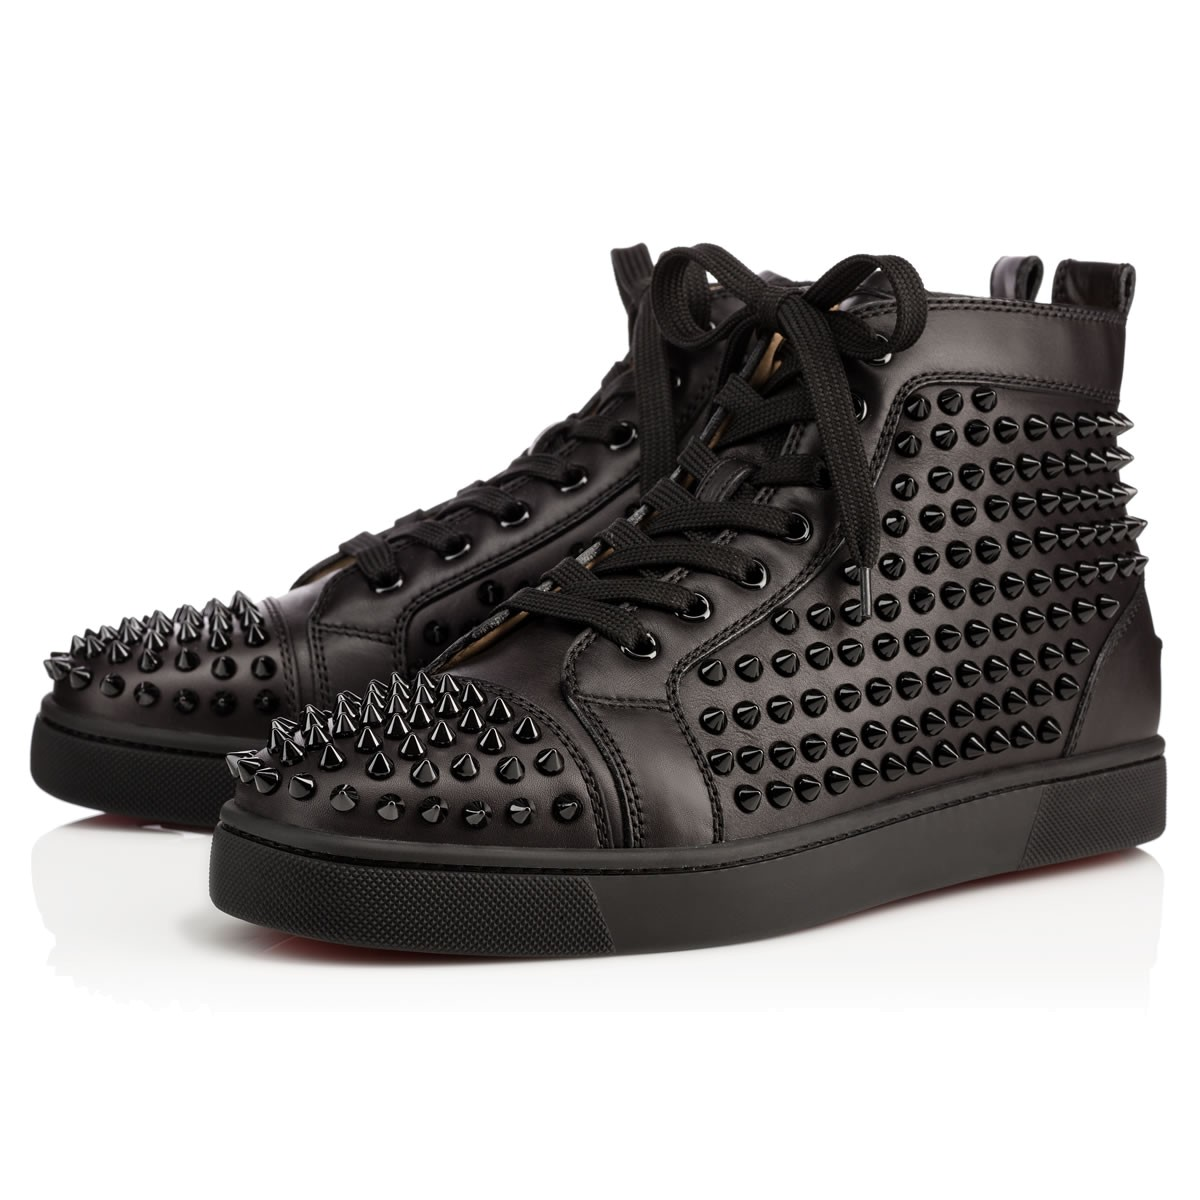 4629128b6588 Louis Spikes Men s Flat Black Black Bk Leather - Men Shoes ...